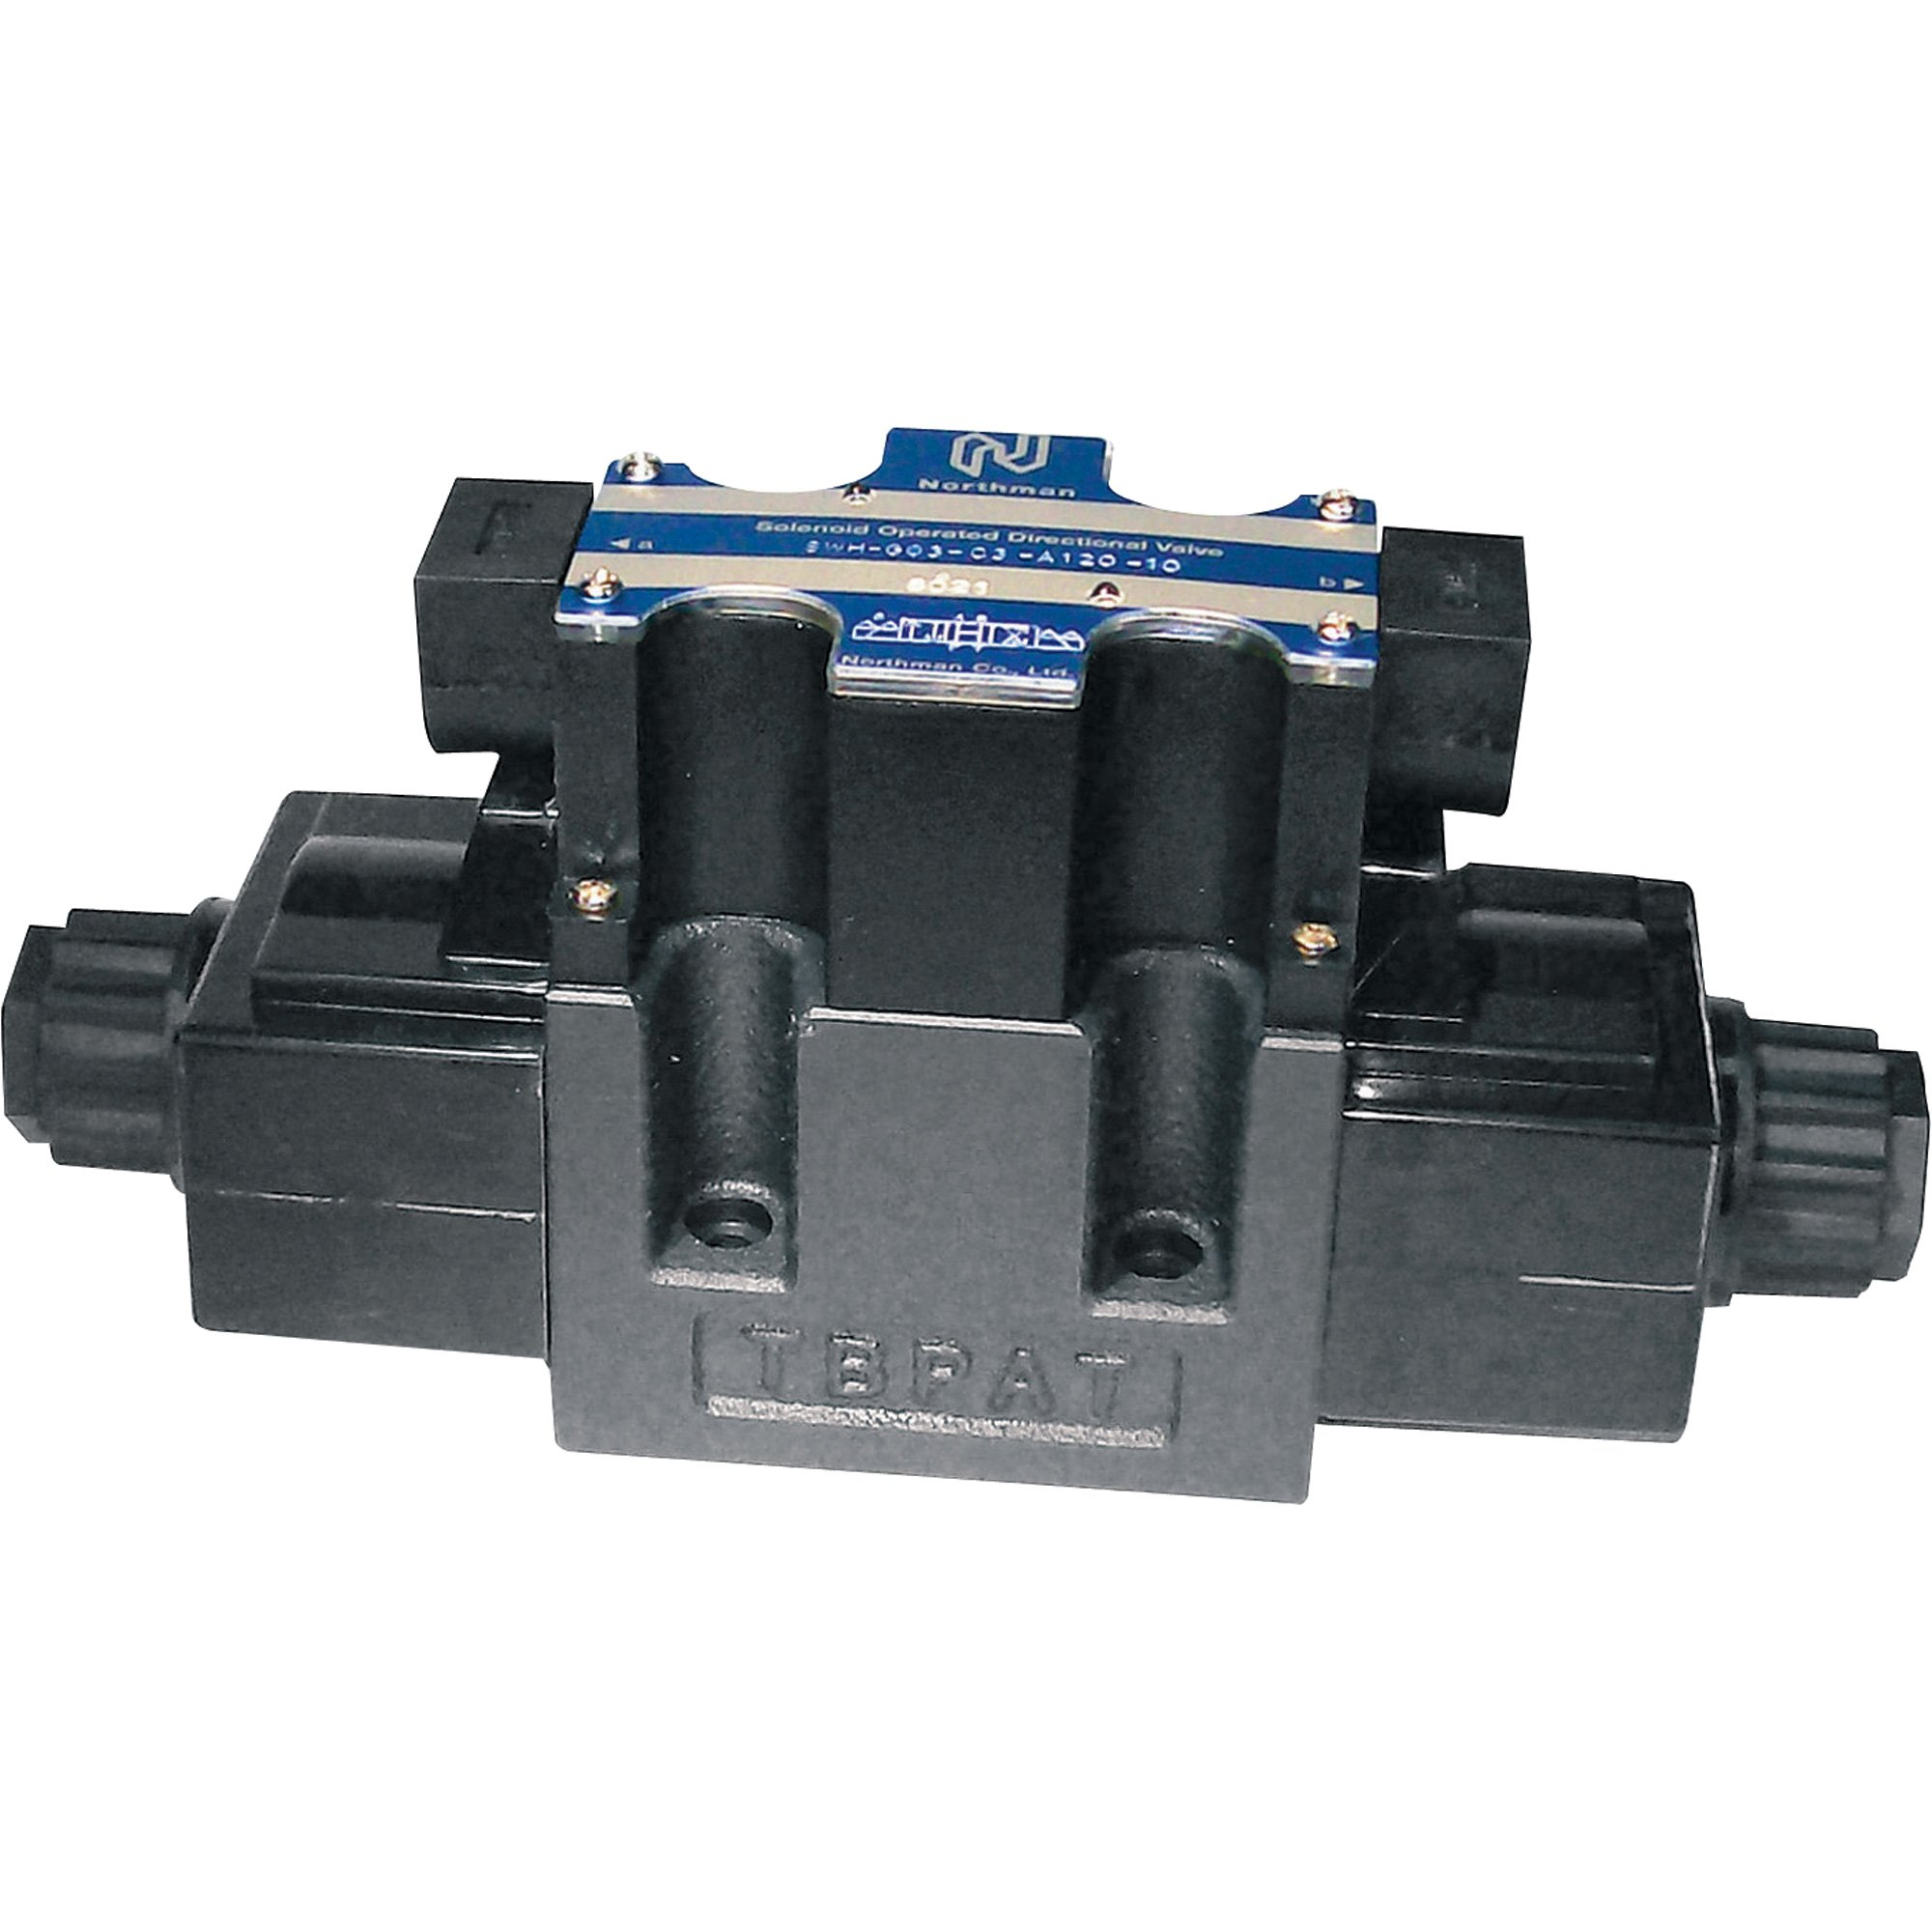 Northman Fluid Power Hydraulic Directional Control Valve - 19.8 GPM, 4500 PSI, 3-Position, Double Solenoid, Tandem Center Spool, 120 Volt AC Solenoids, Model# SWH-G03-C6-A120-10